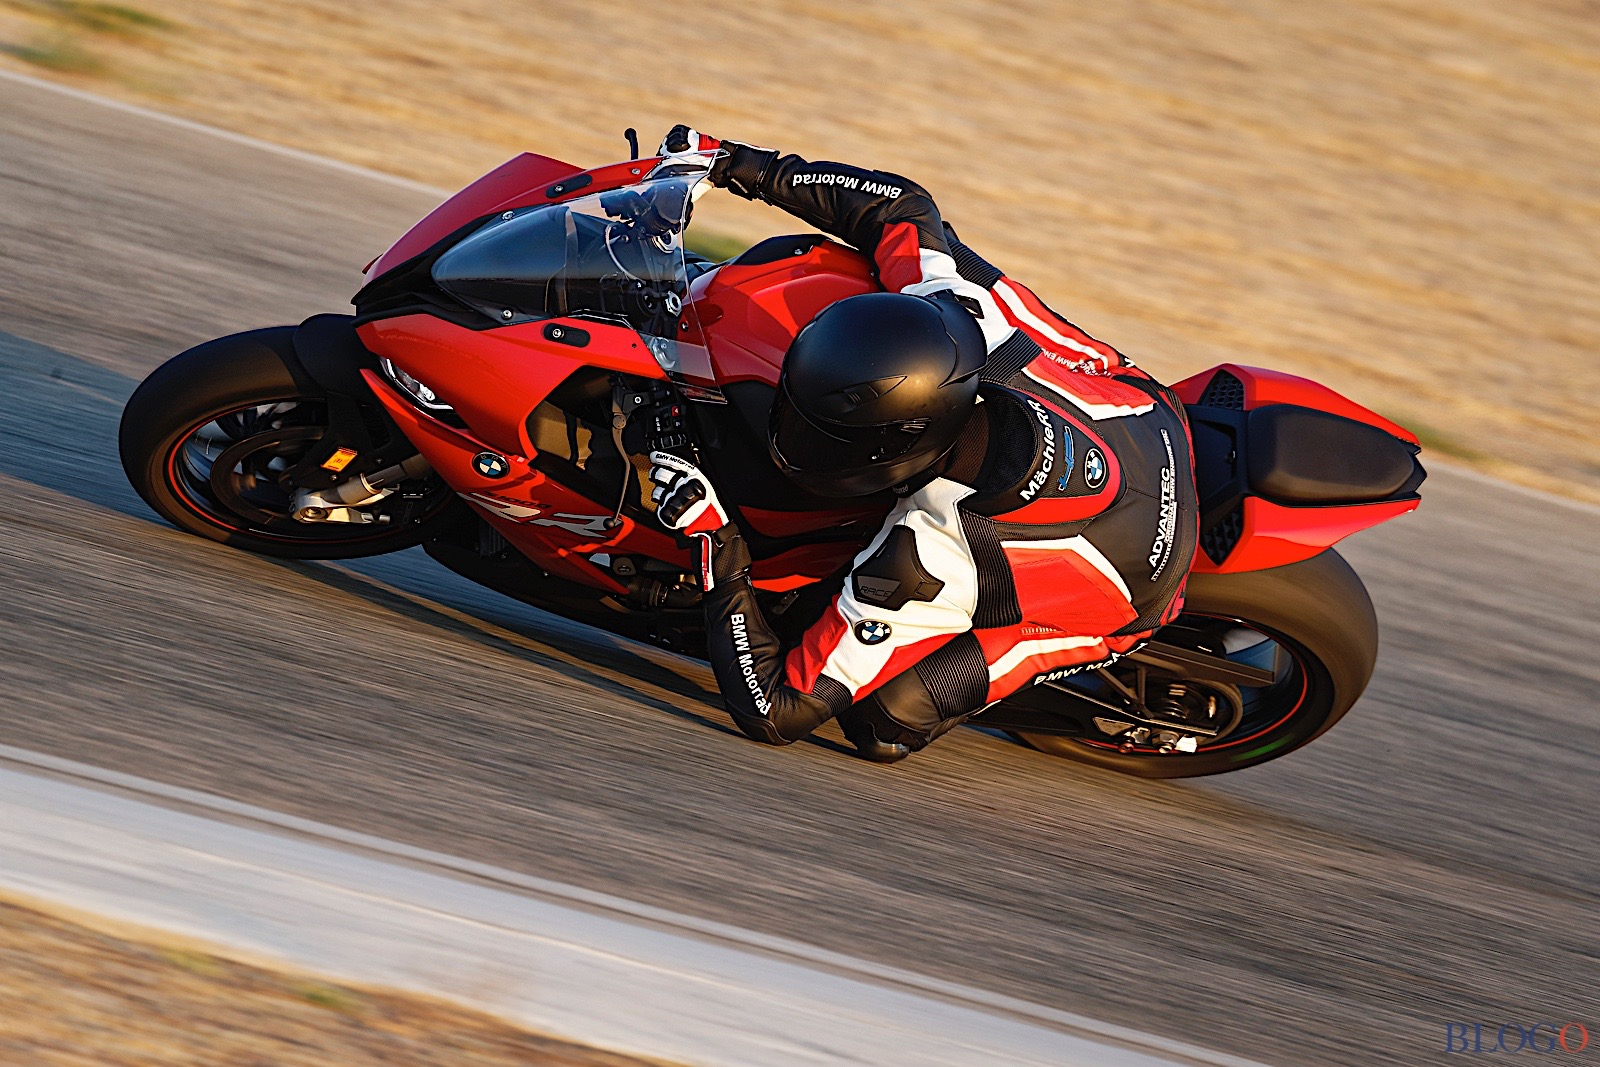 BMW S1000RR 2019 - Page 3 S-100020